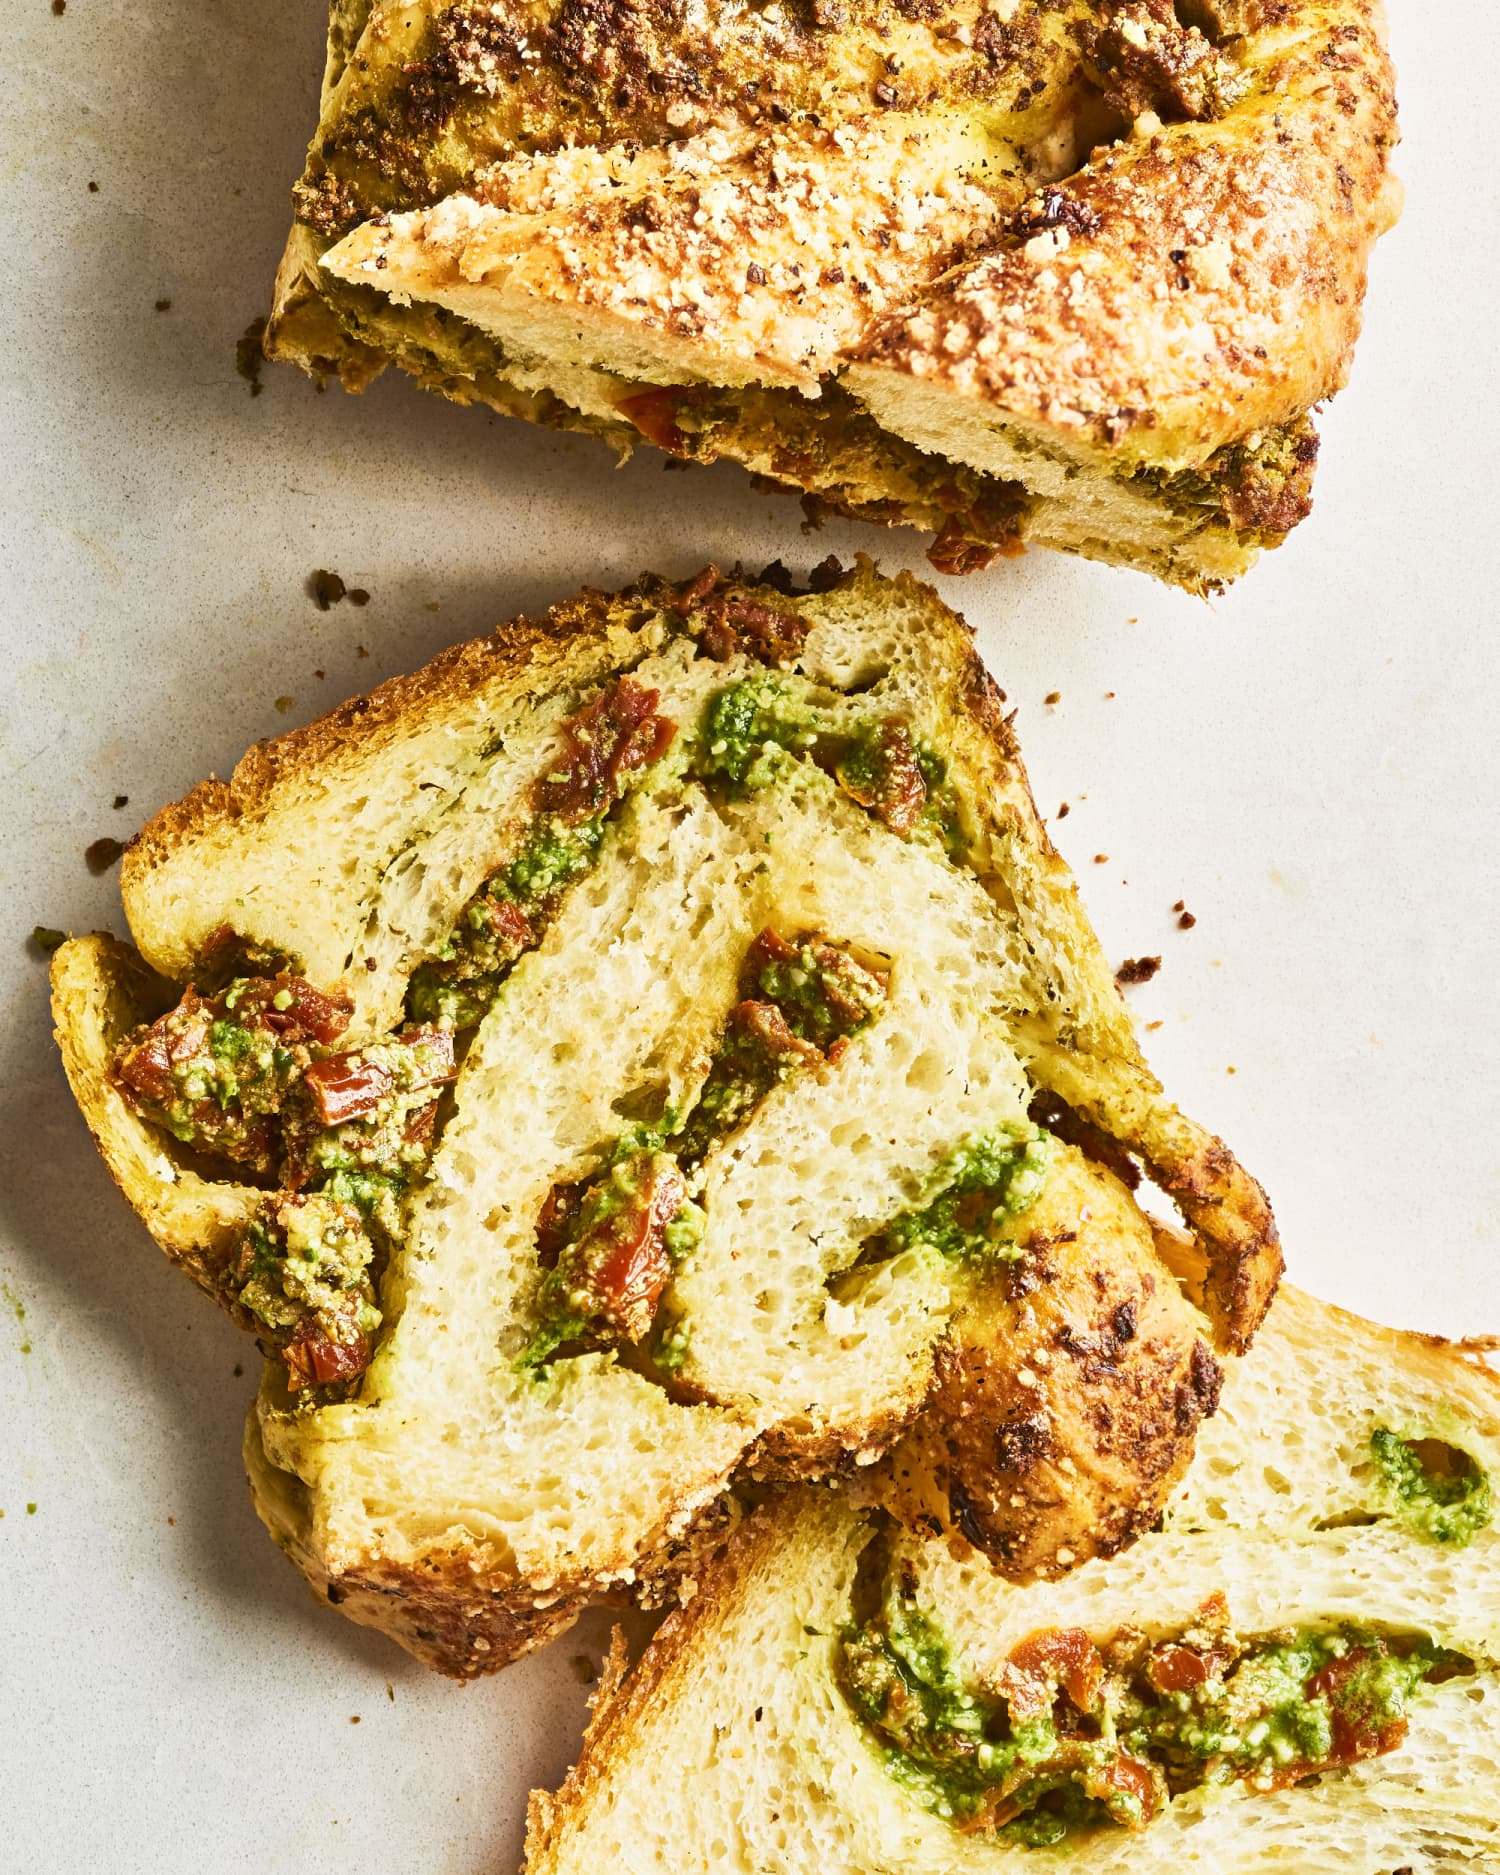 Recipe: Savory Babka with Pesto, Ricotta, and Sun-Dried Tomato